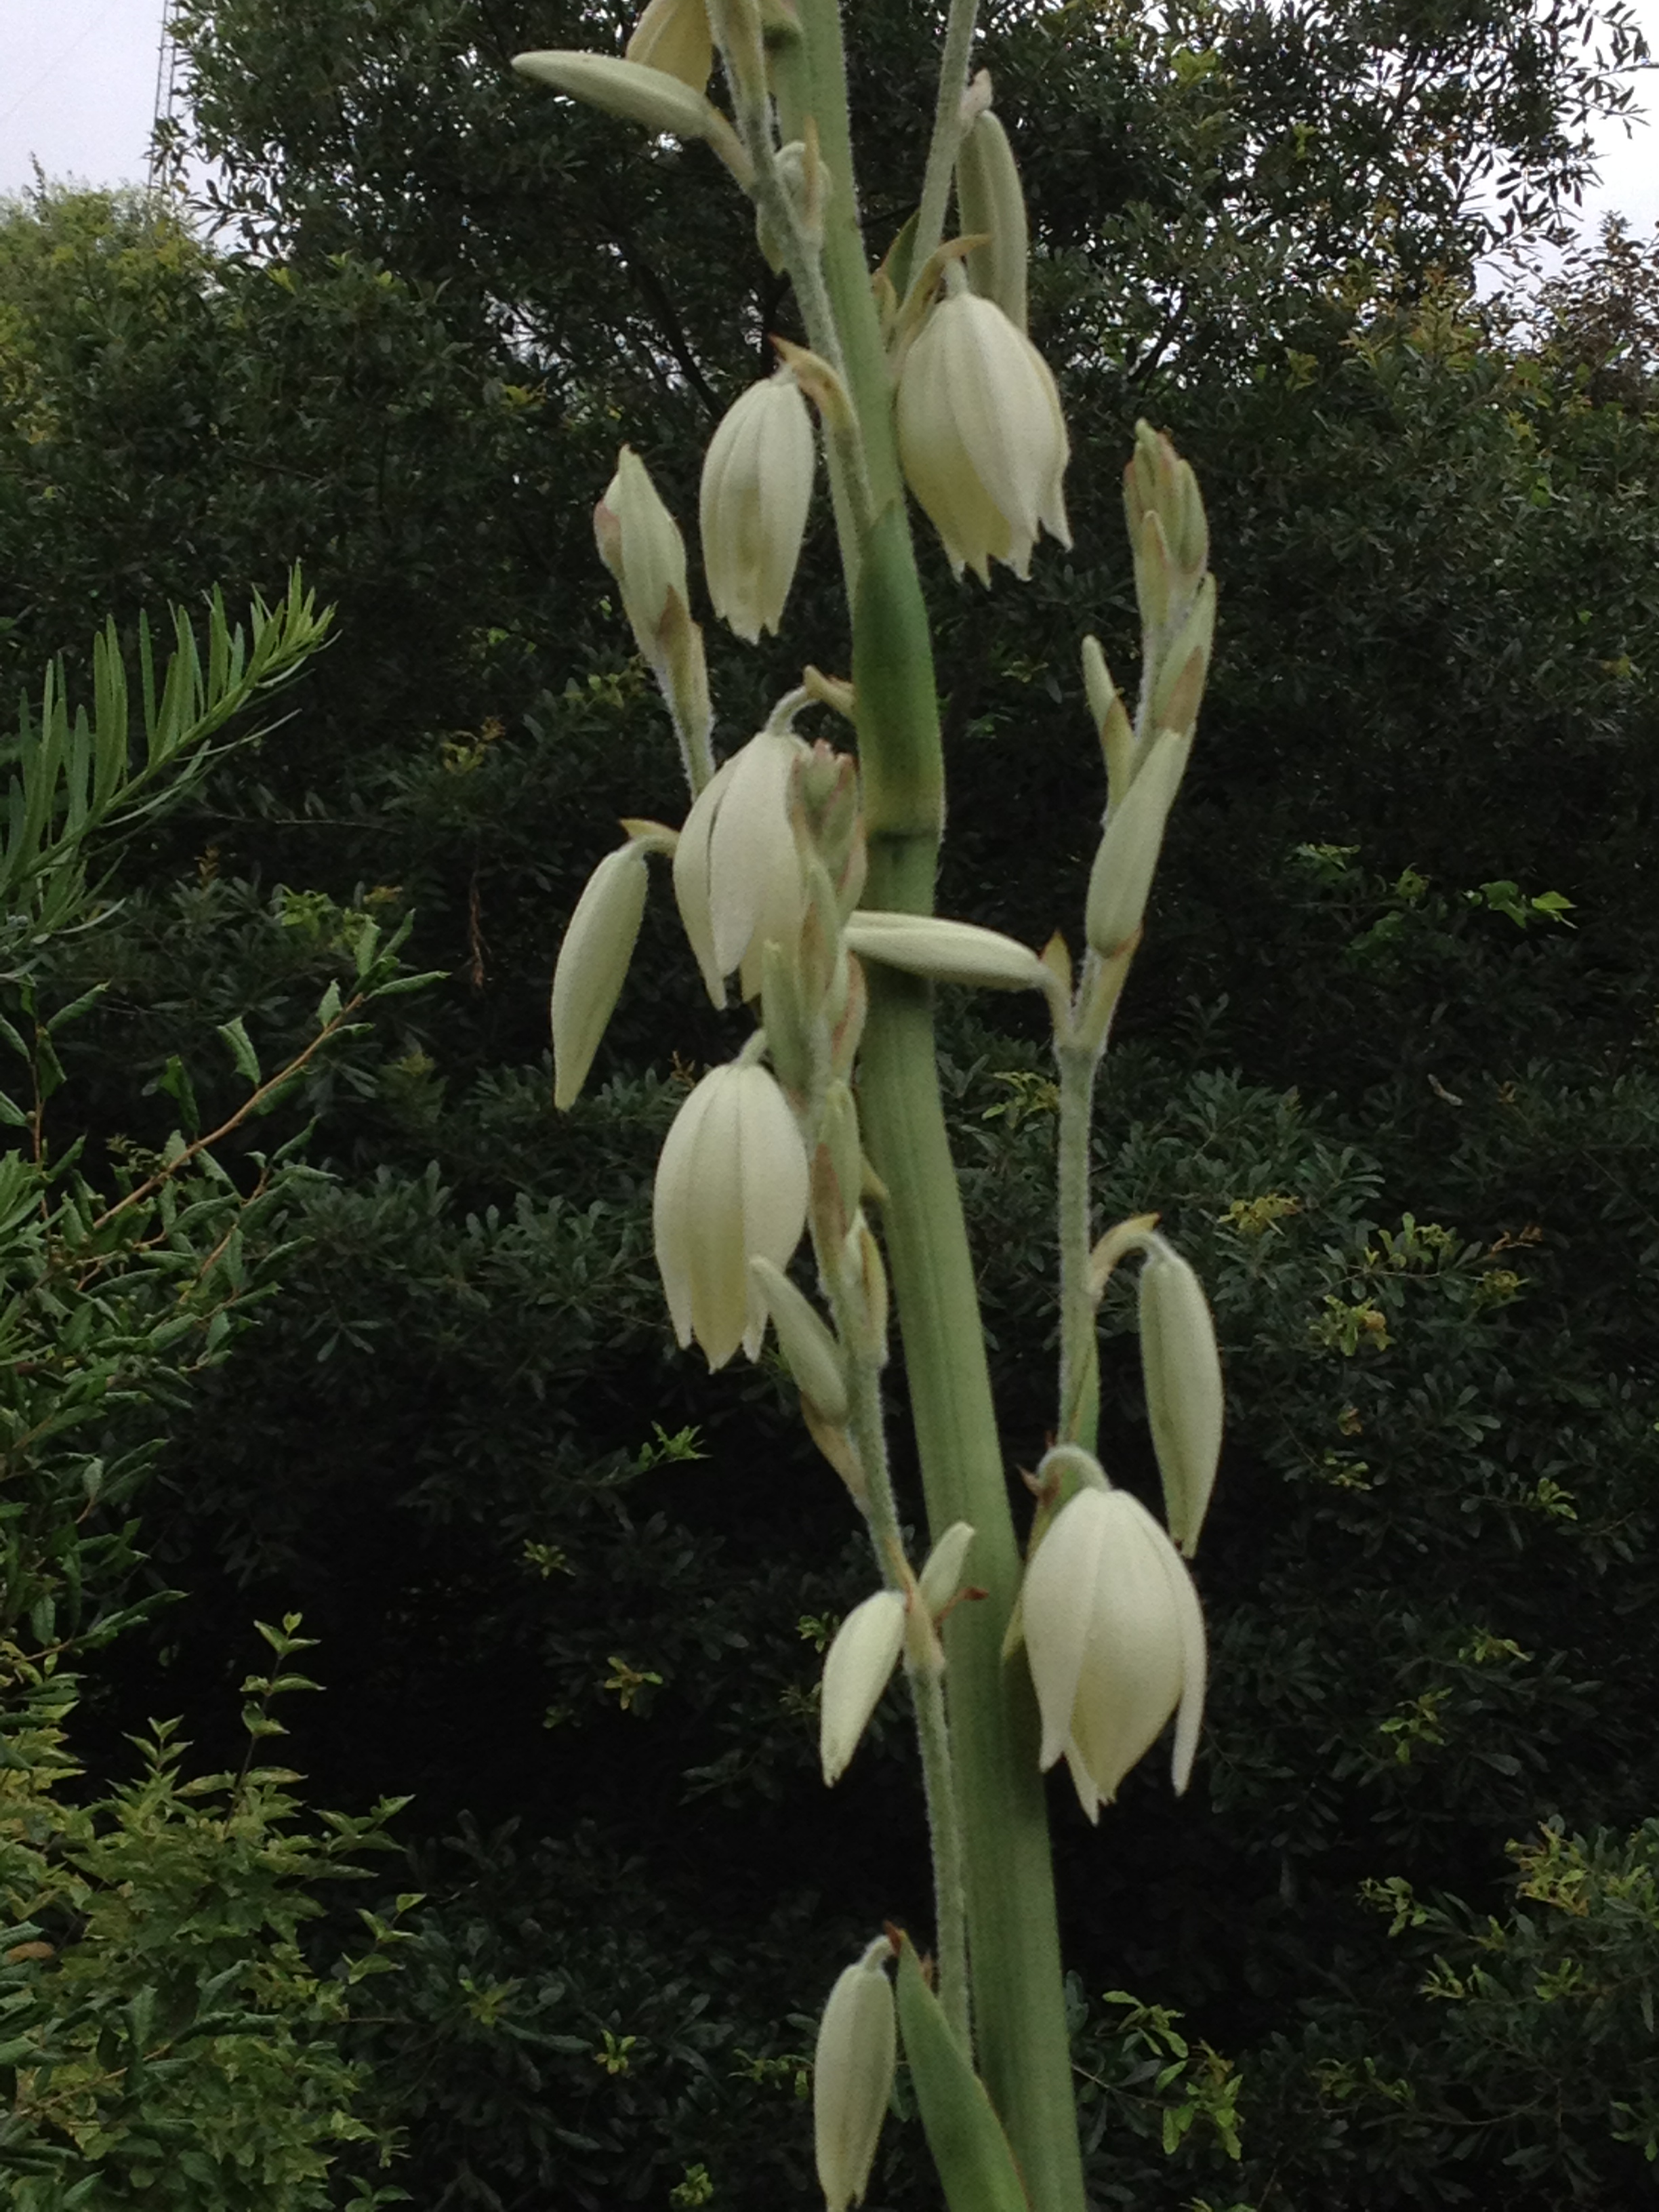 Large flowers on tall spikes make this an attractive flowering plant.